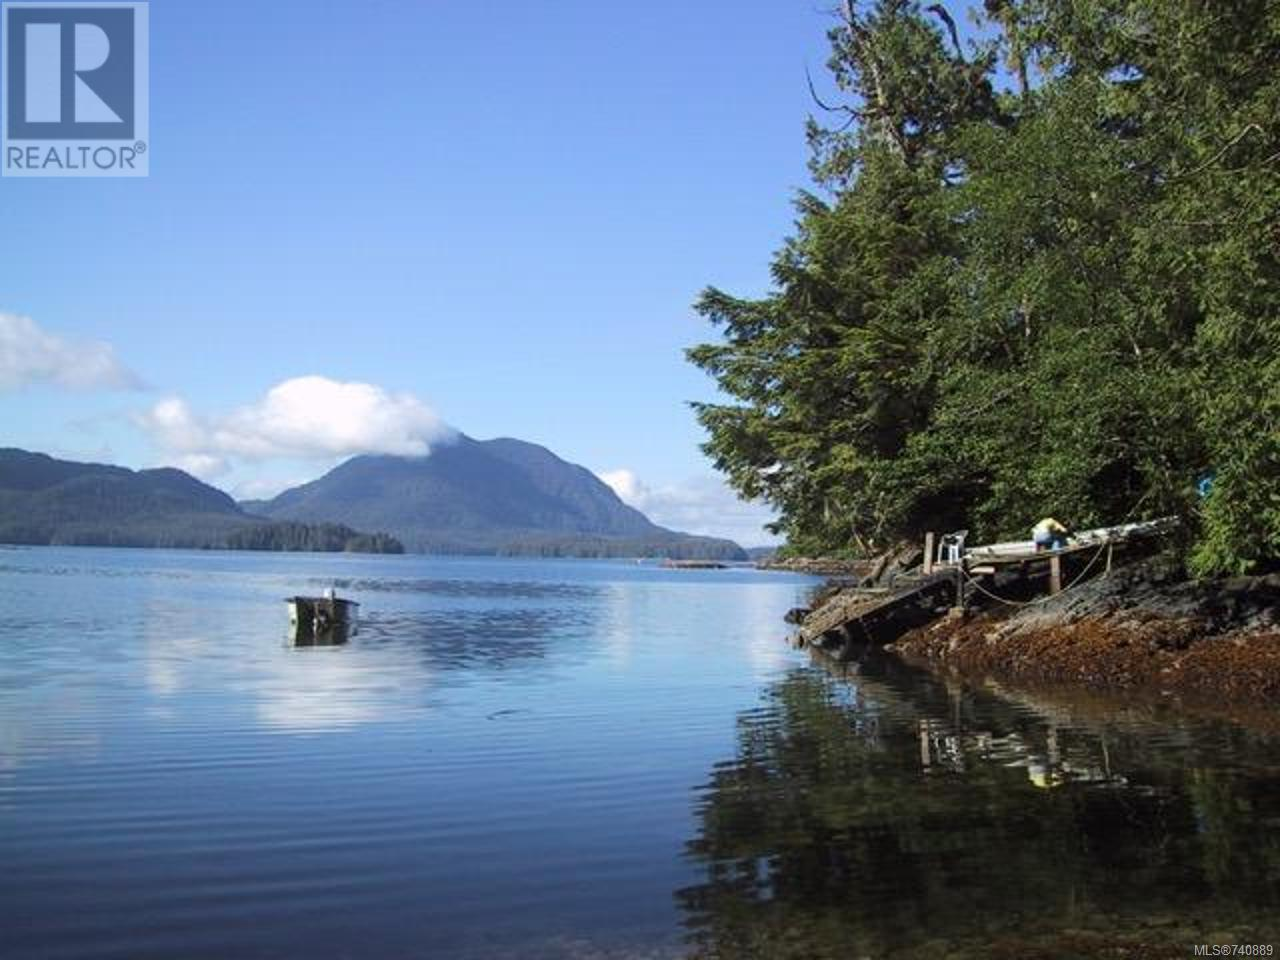 MLS® #740889 - Tofino House For sale Image #1